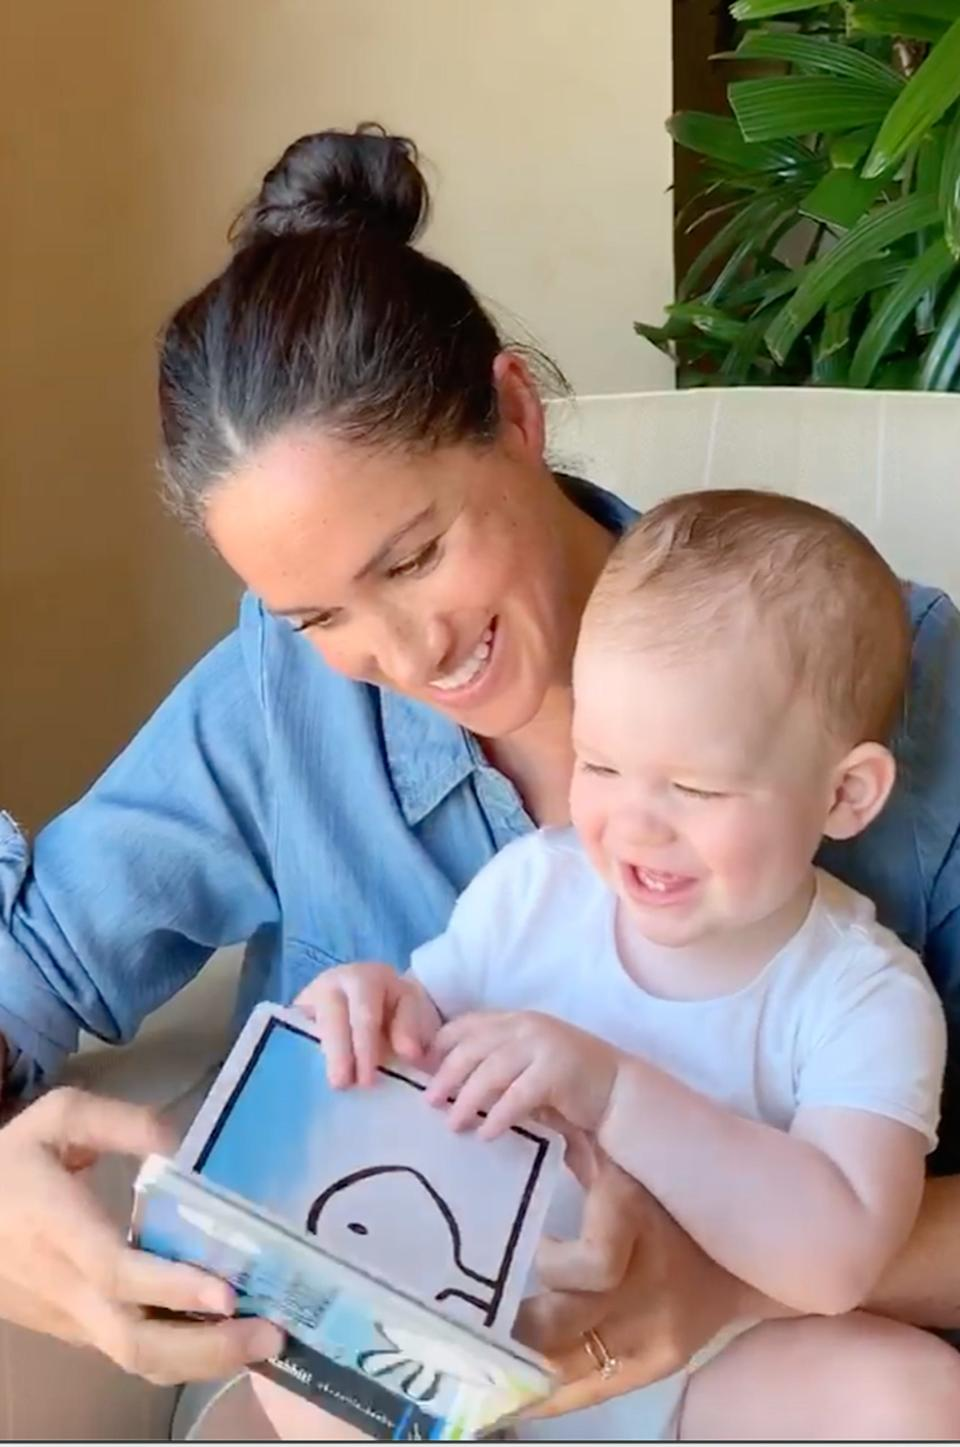 Duchess Meghan of Sussex reads to son Archie who turned 1 on May 6, 2020. The image is taken from a video published on the @SaveChildrenUK campaign Instagram page.